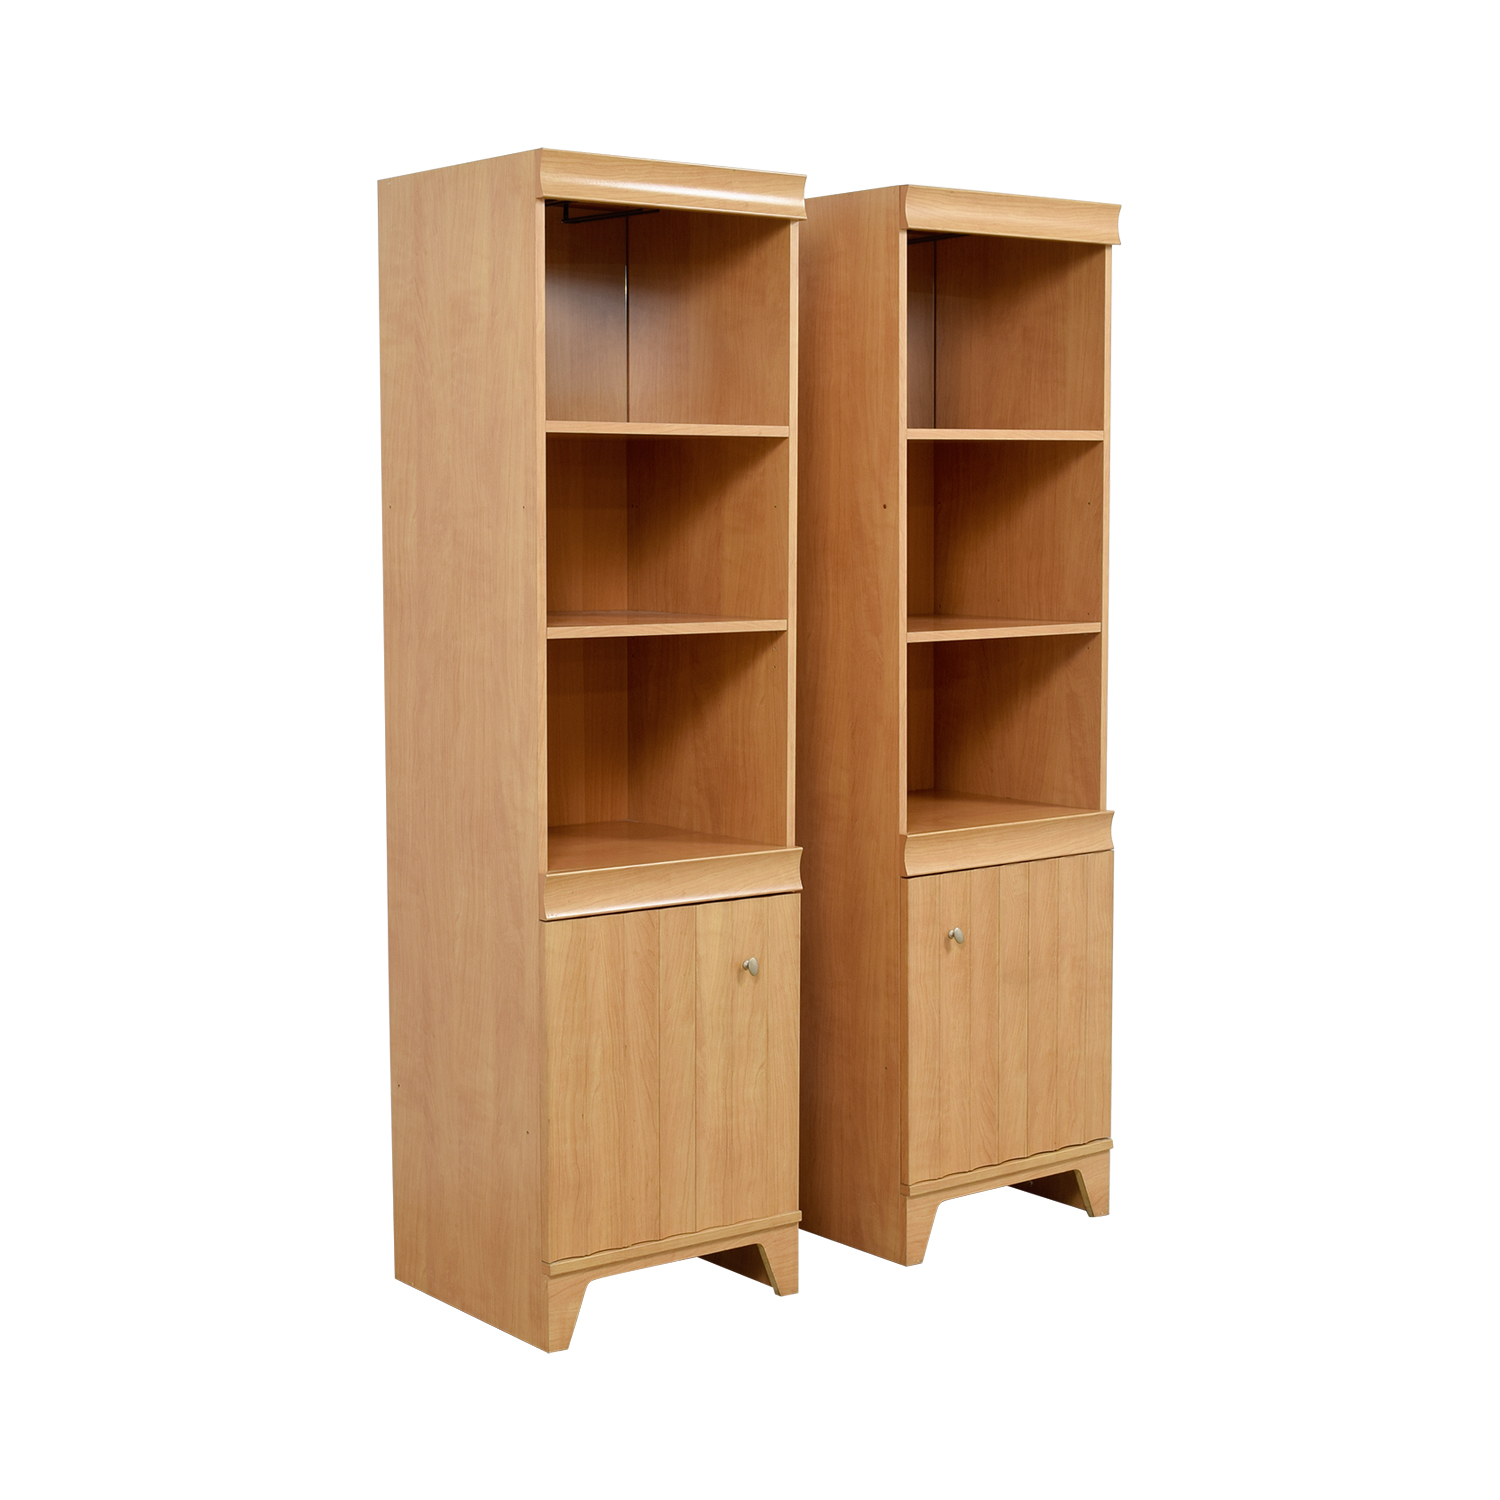 Bookshelves with Mirror on Top Shelf and Storage discount